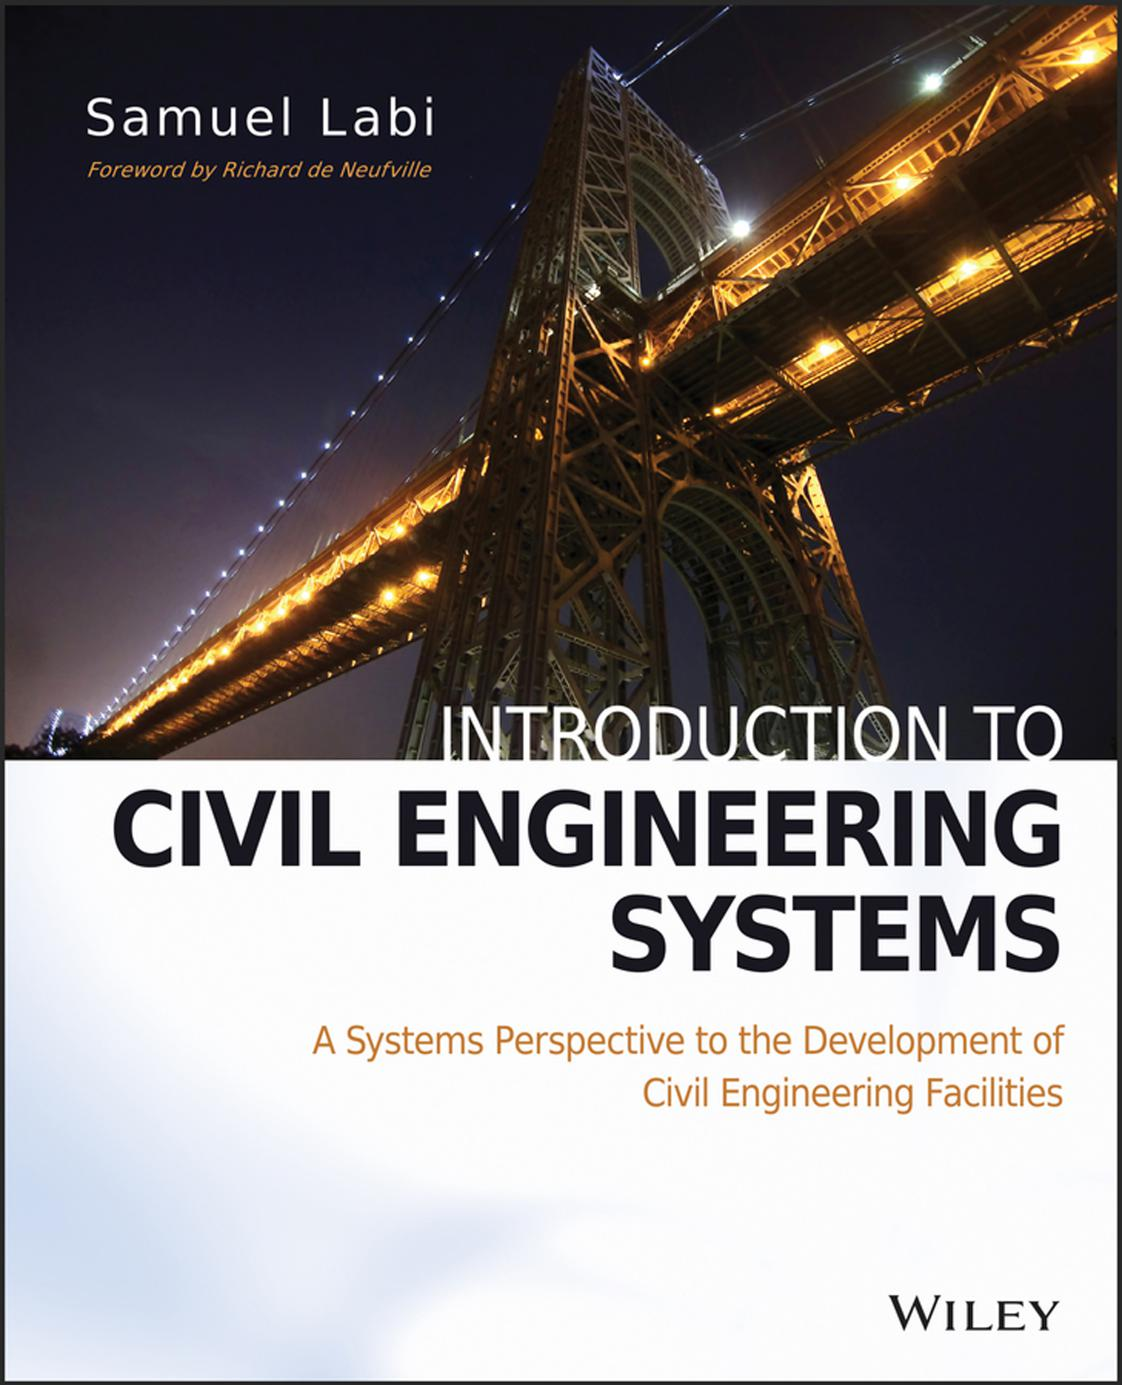 Introduction to Civil Engineering Systems: A Systems Perspective to the Development of Civil Engineering Facilities download dree